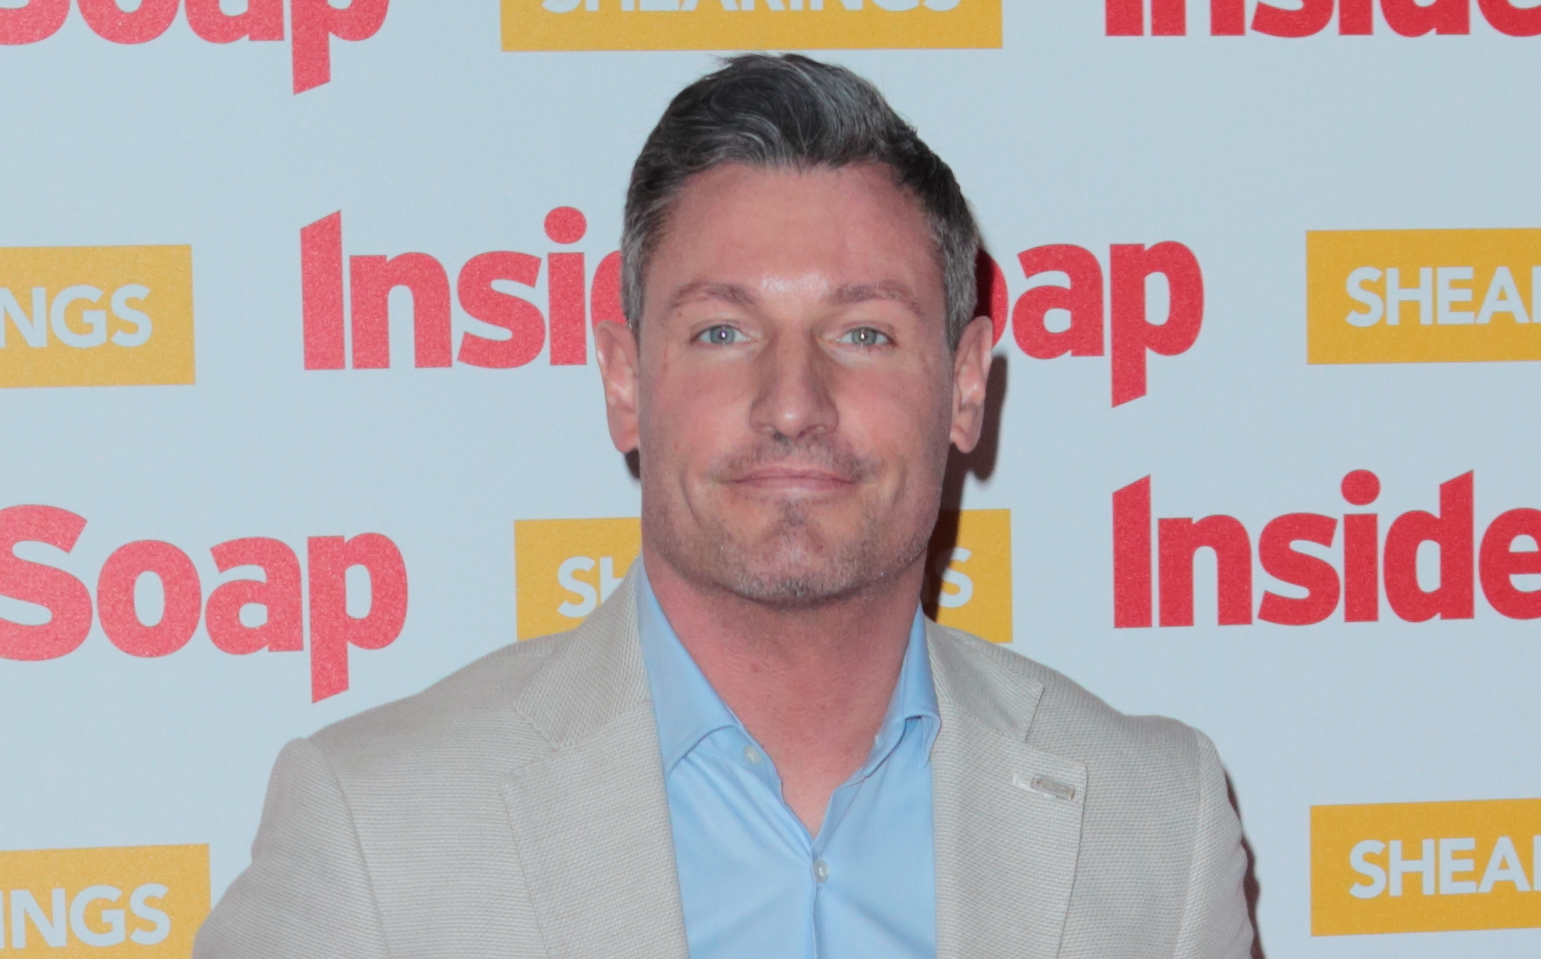 EastEnders' Dean Gaffney blasts reports he's using dating app